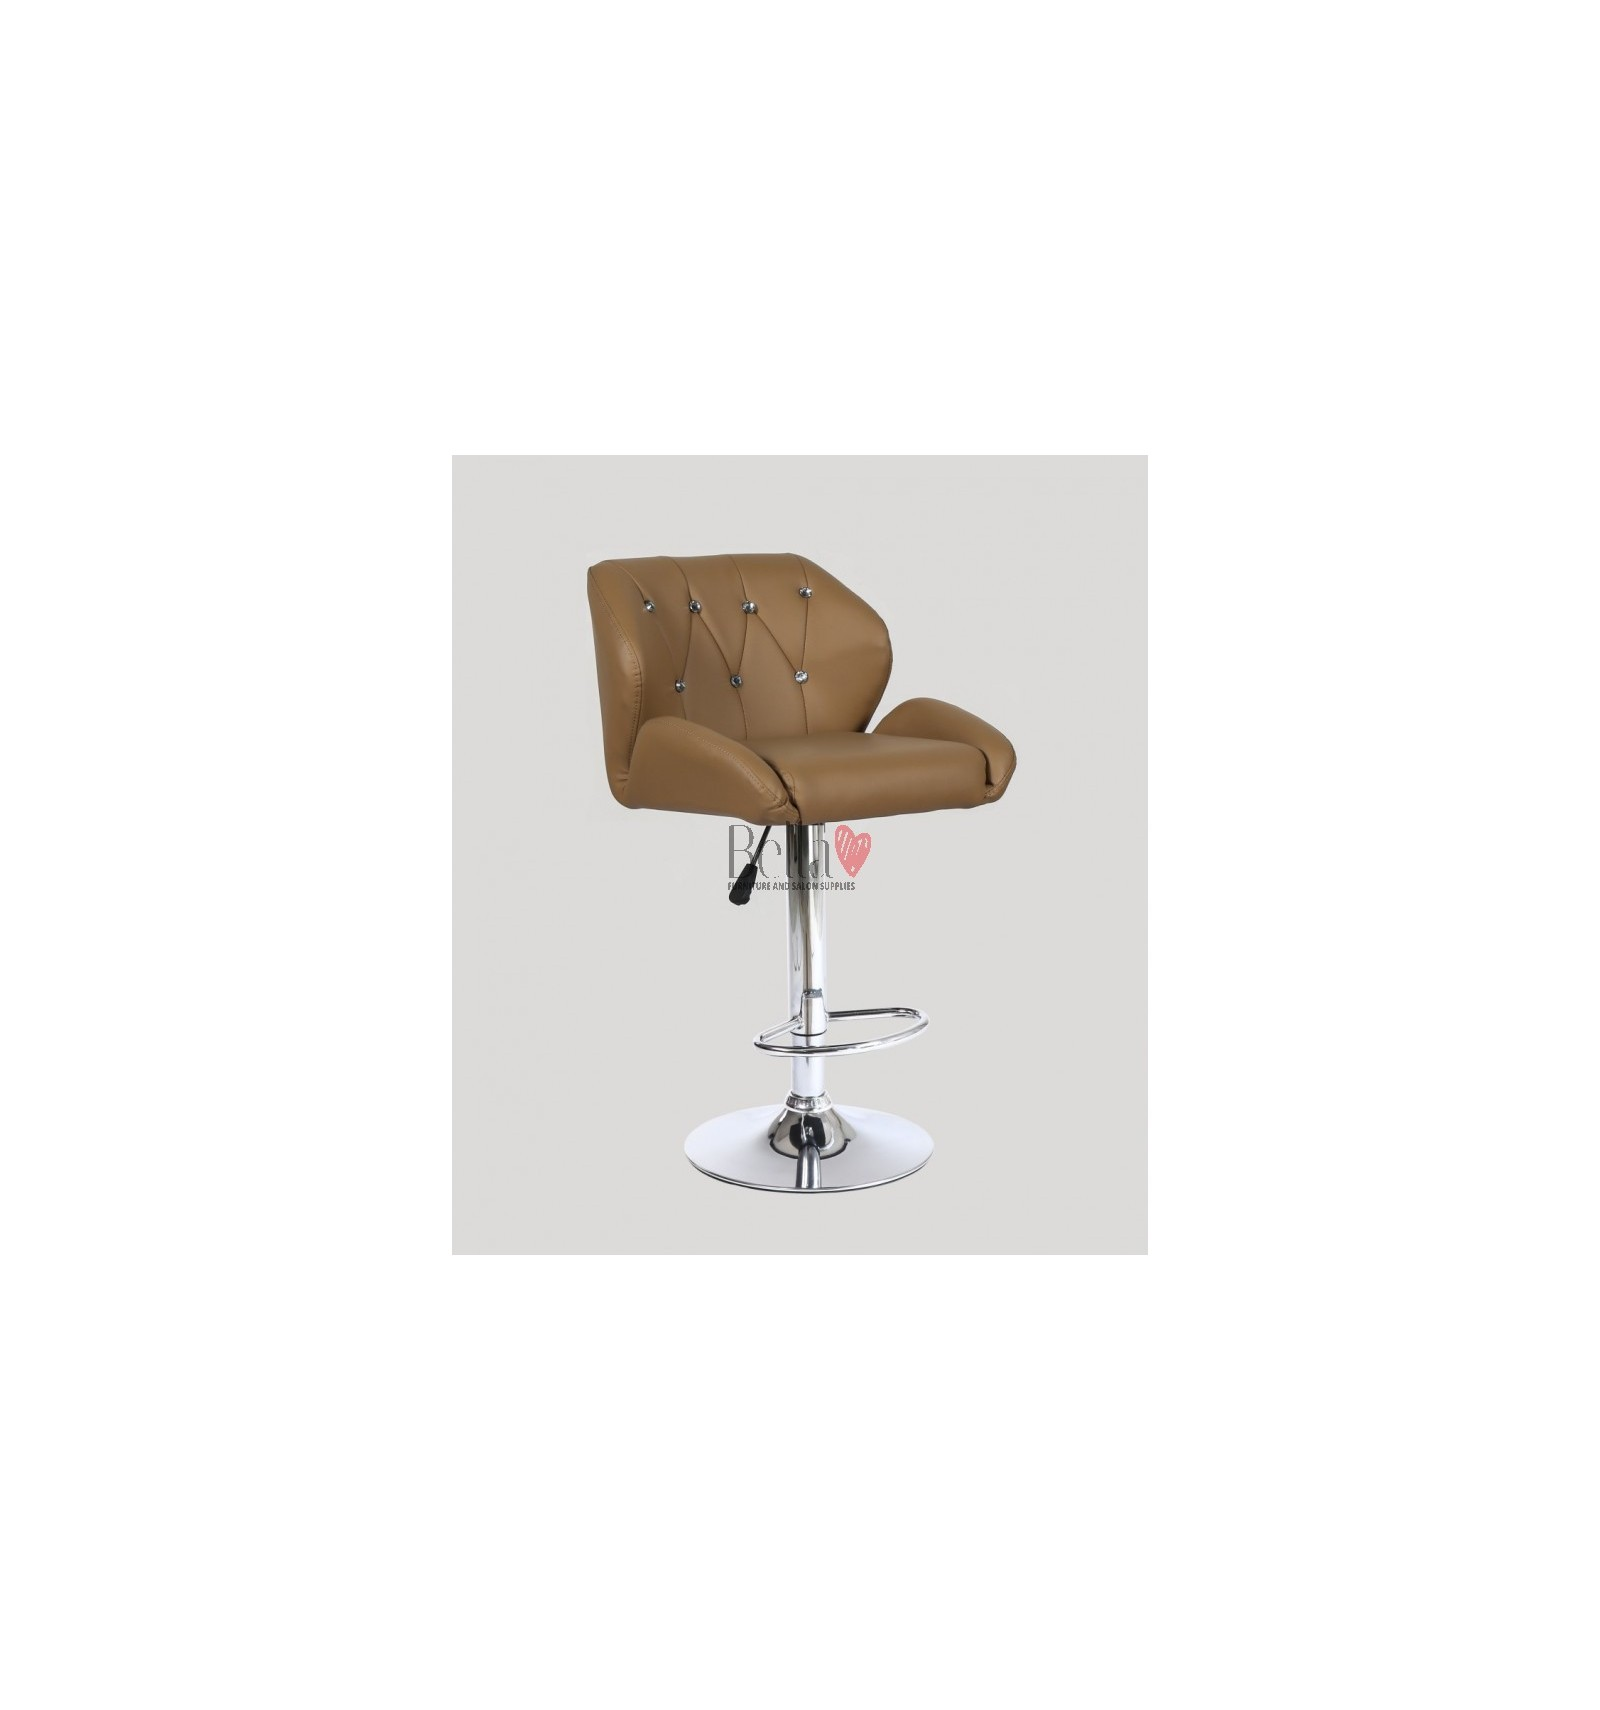 Makeup and reception high chairs for sale High makeup chairs Ireland